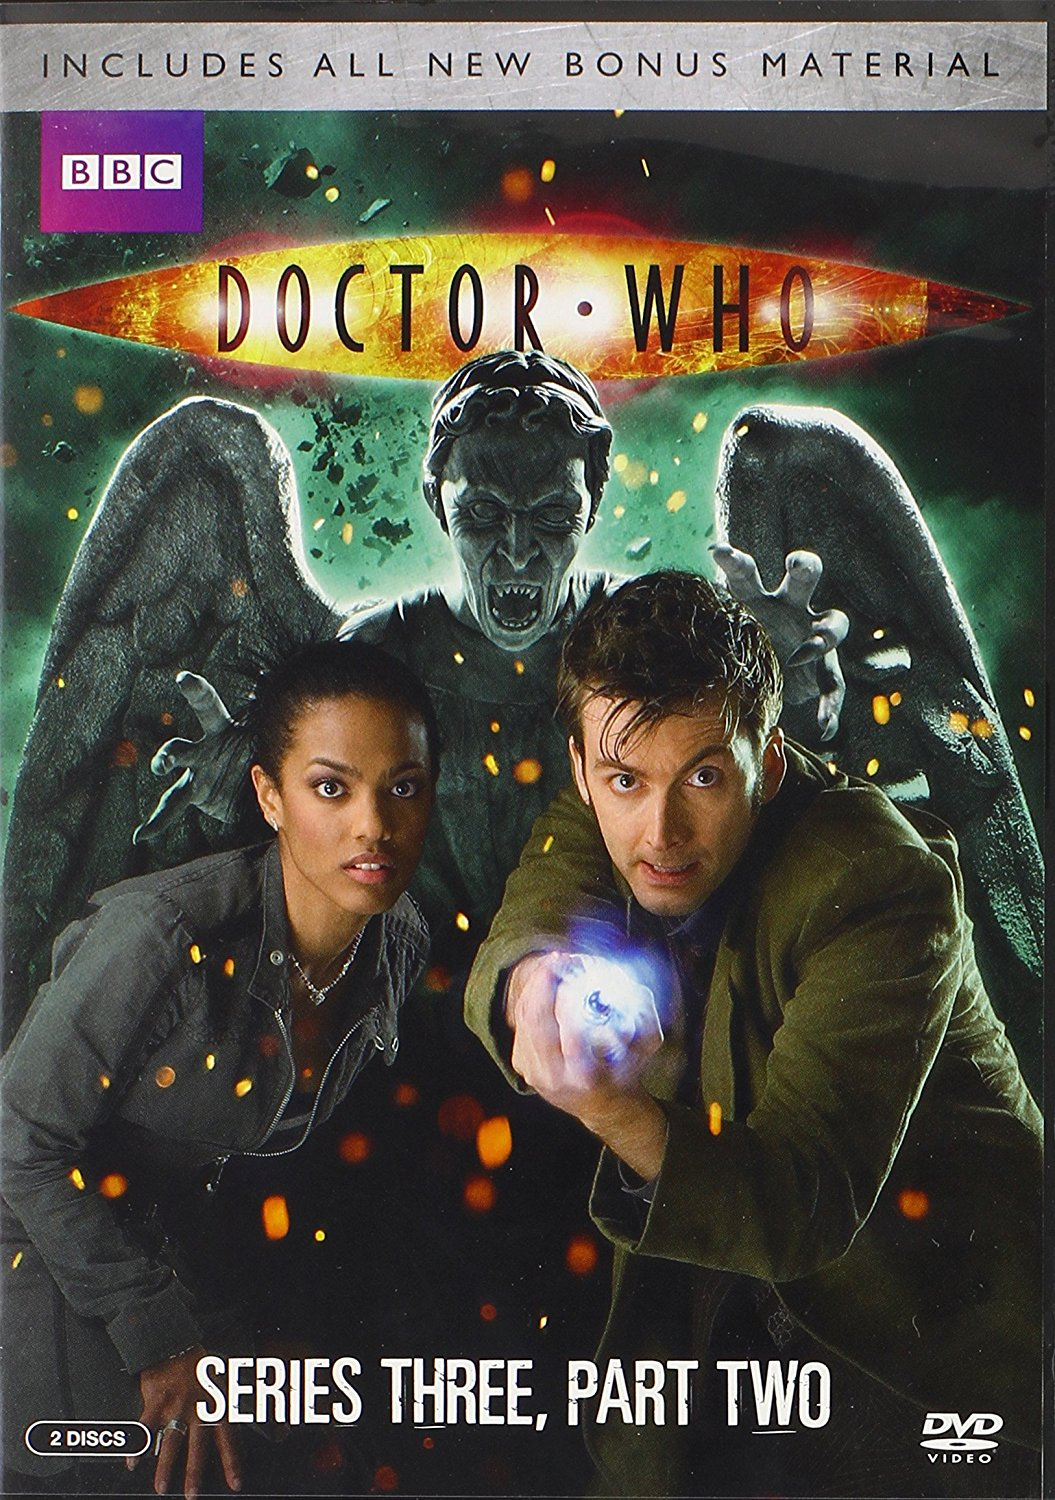 Doctor Who Series 3 (Three), Part 2 DVD Set